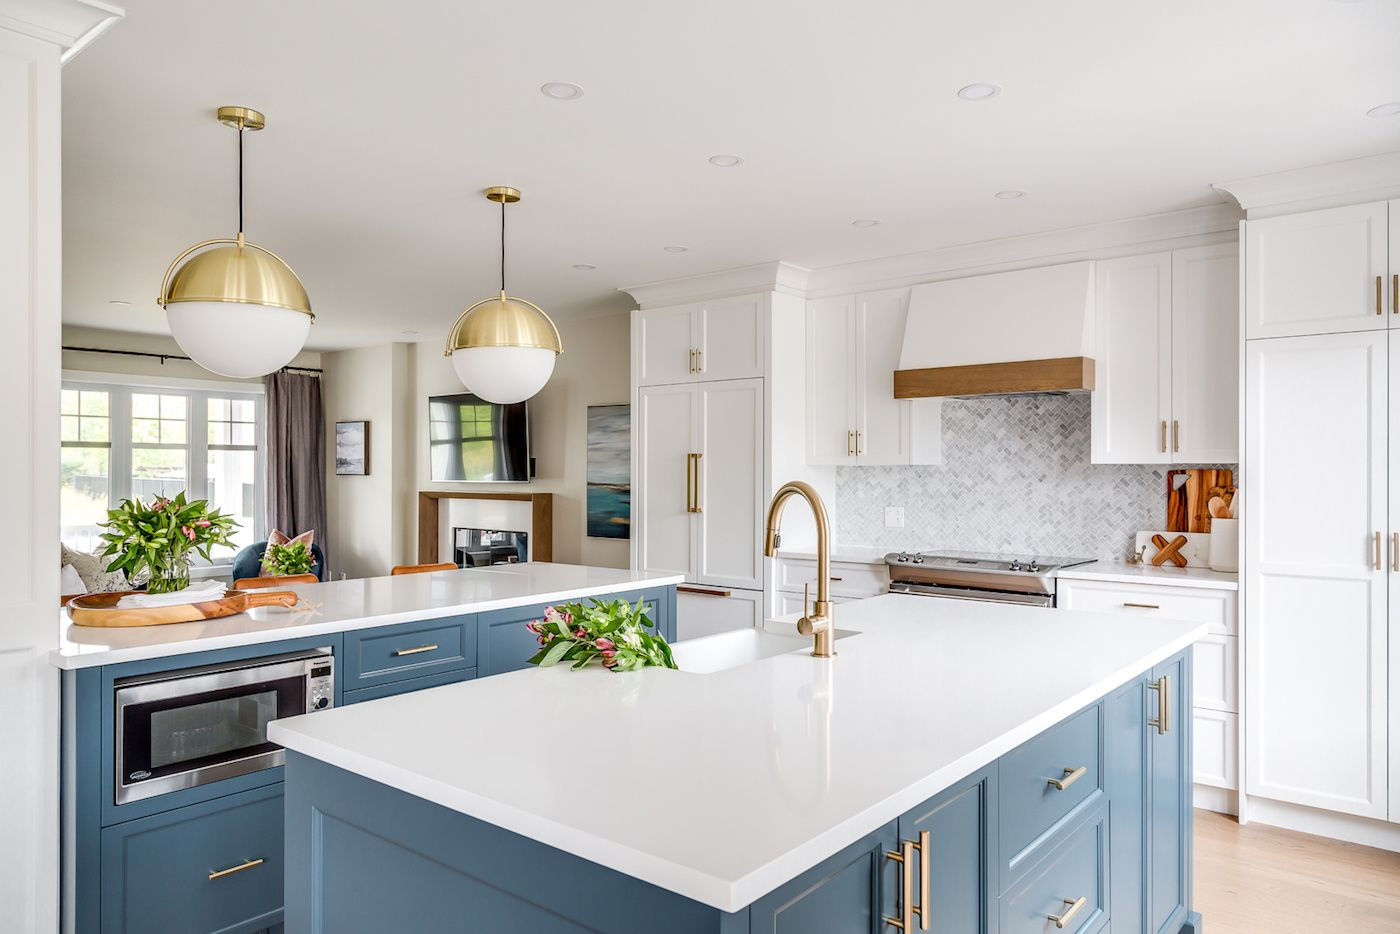 Kitchen with turquoise cabinets and brass pendant lights